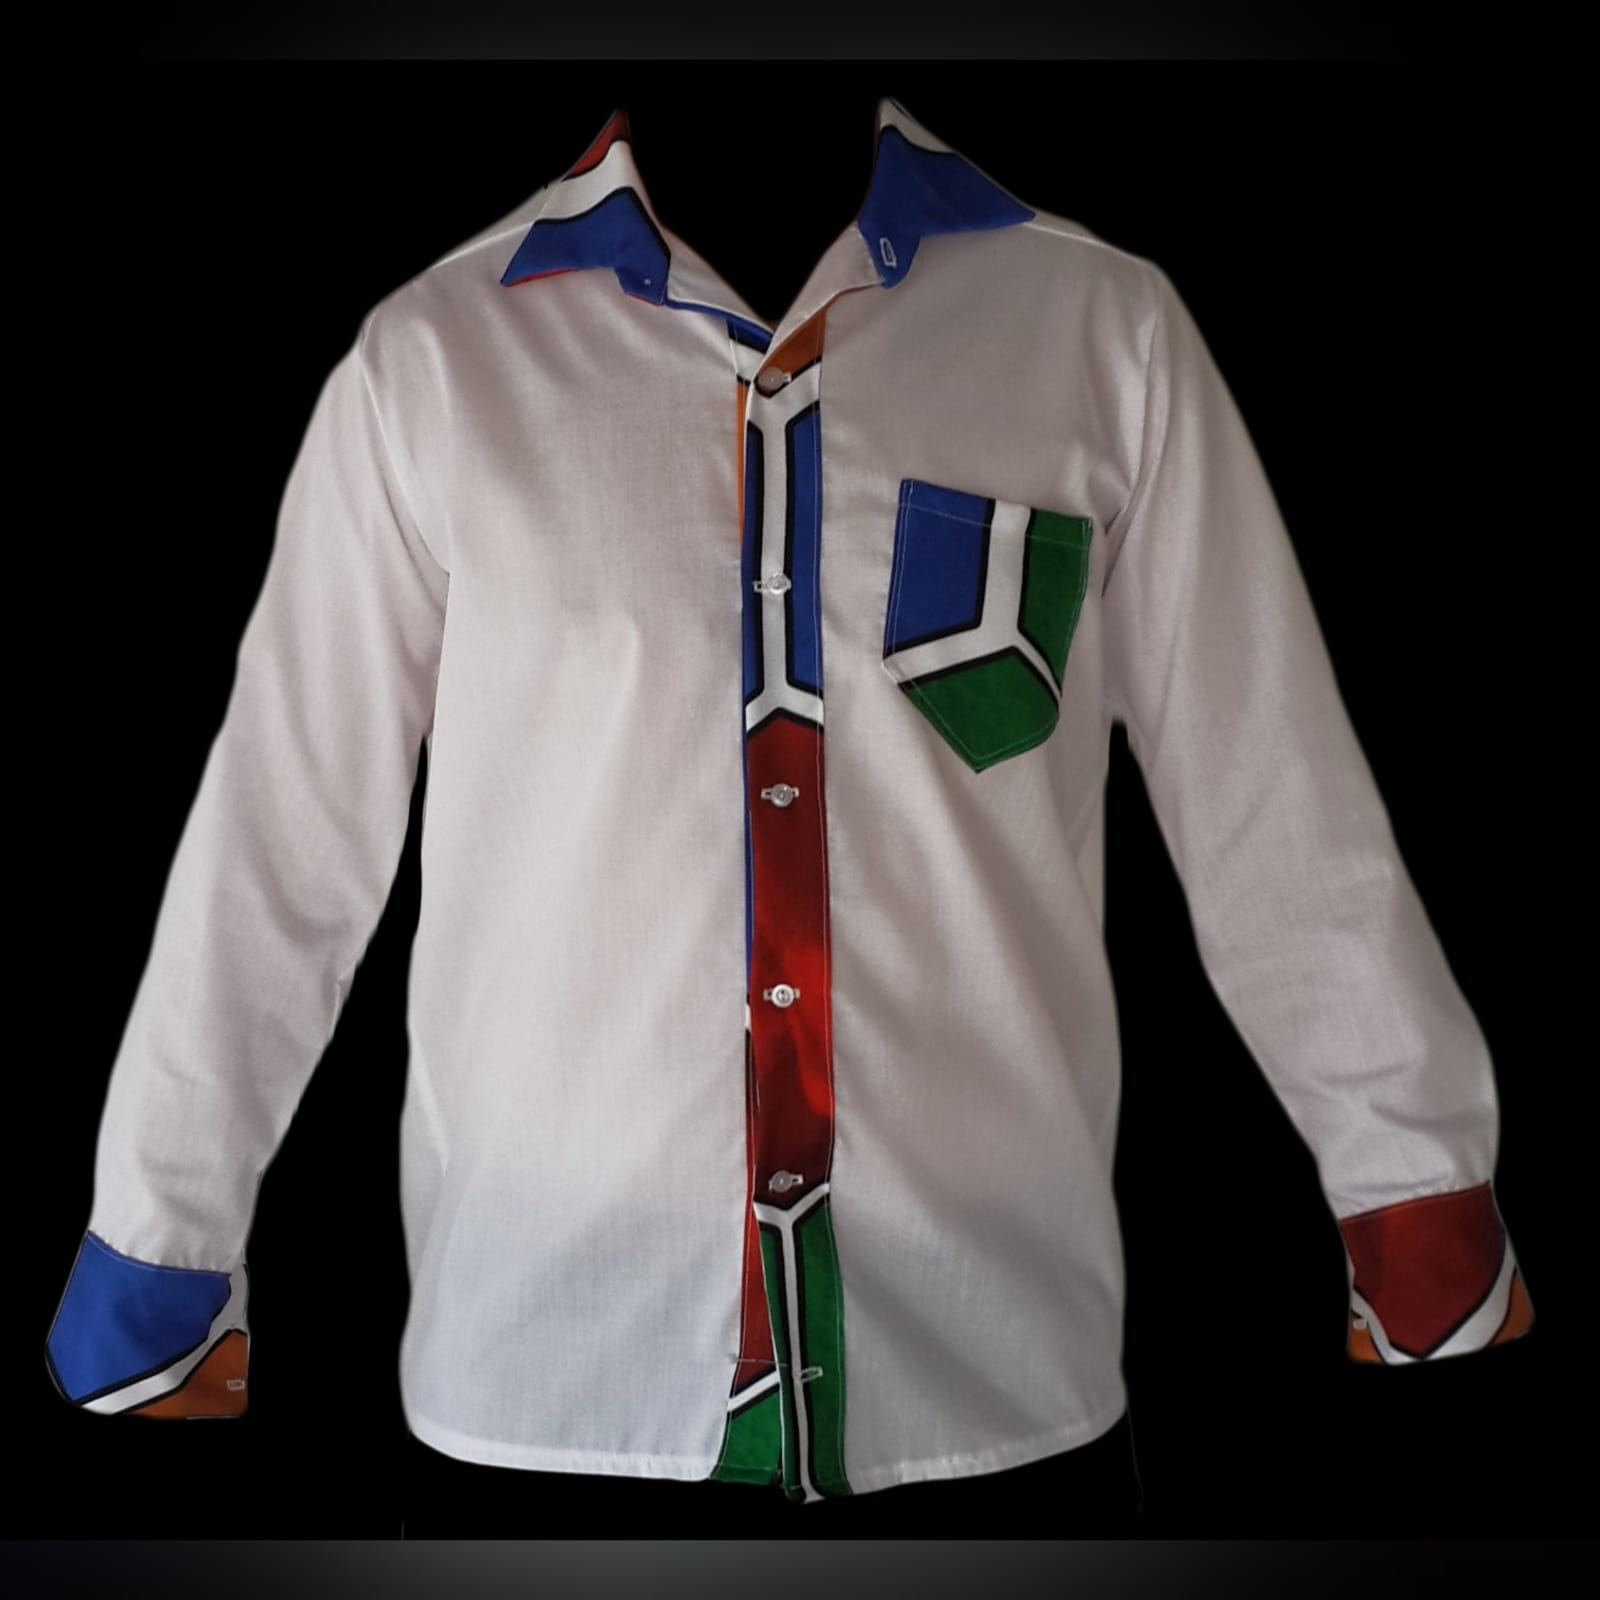 Ndebele empire fit dress with matching shirt 4 custom printed ndebele empire fit, long dress with a white under bust belt with men's matching shirt.